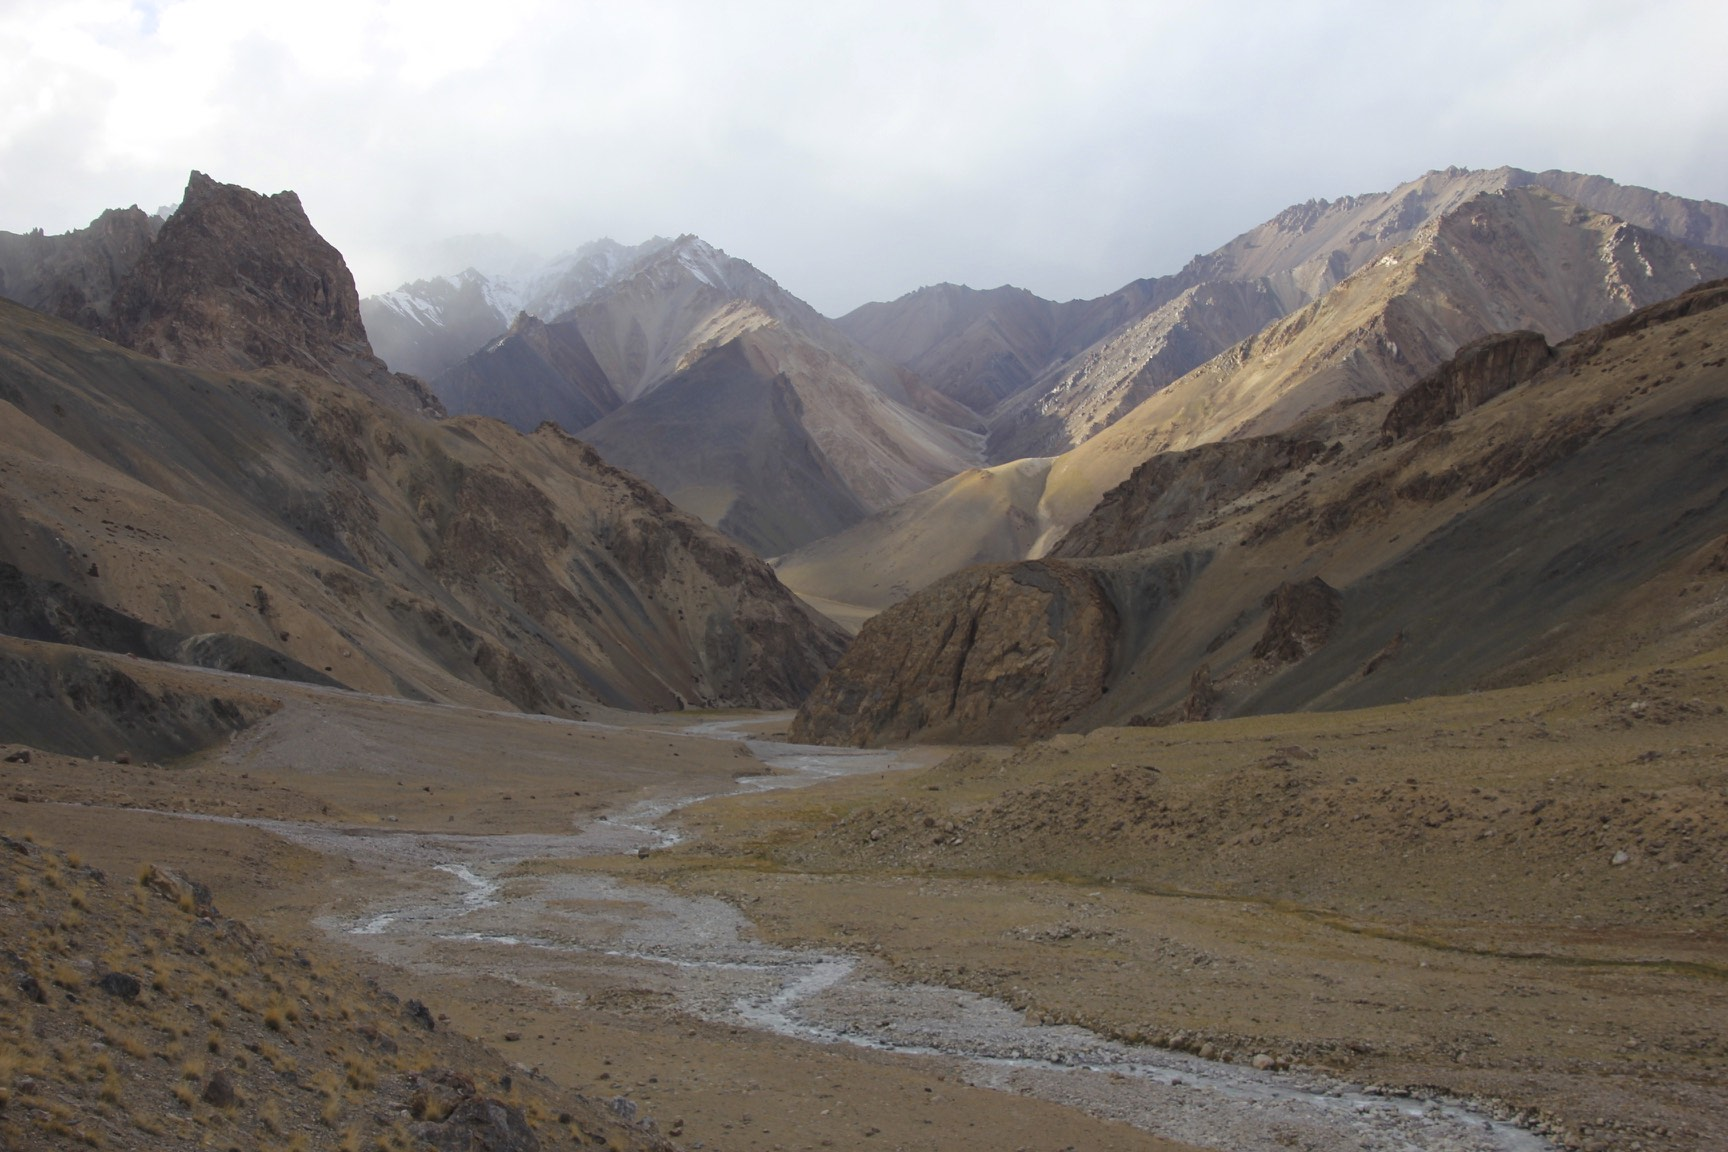 The approach to the Aghil PAss